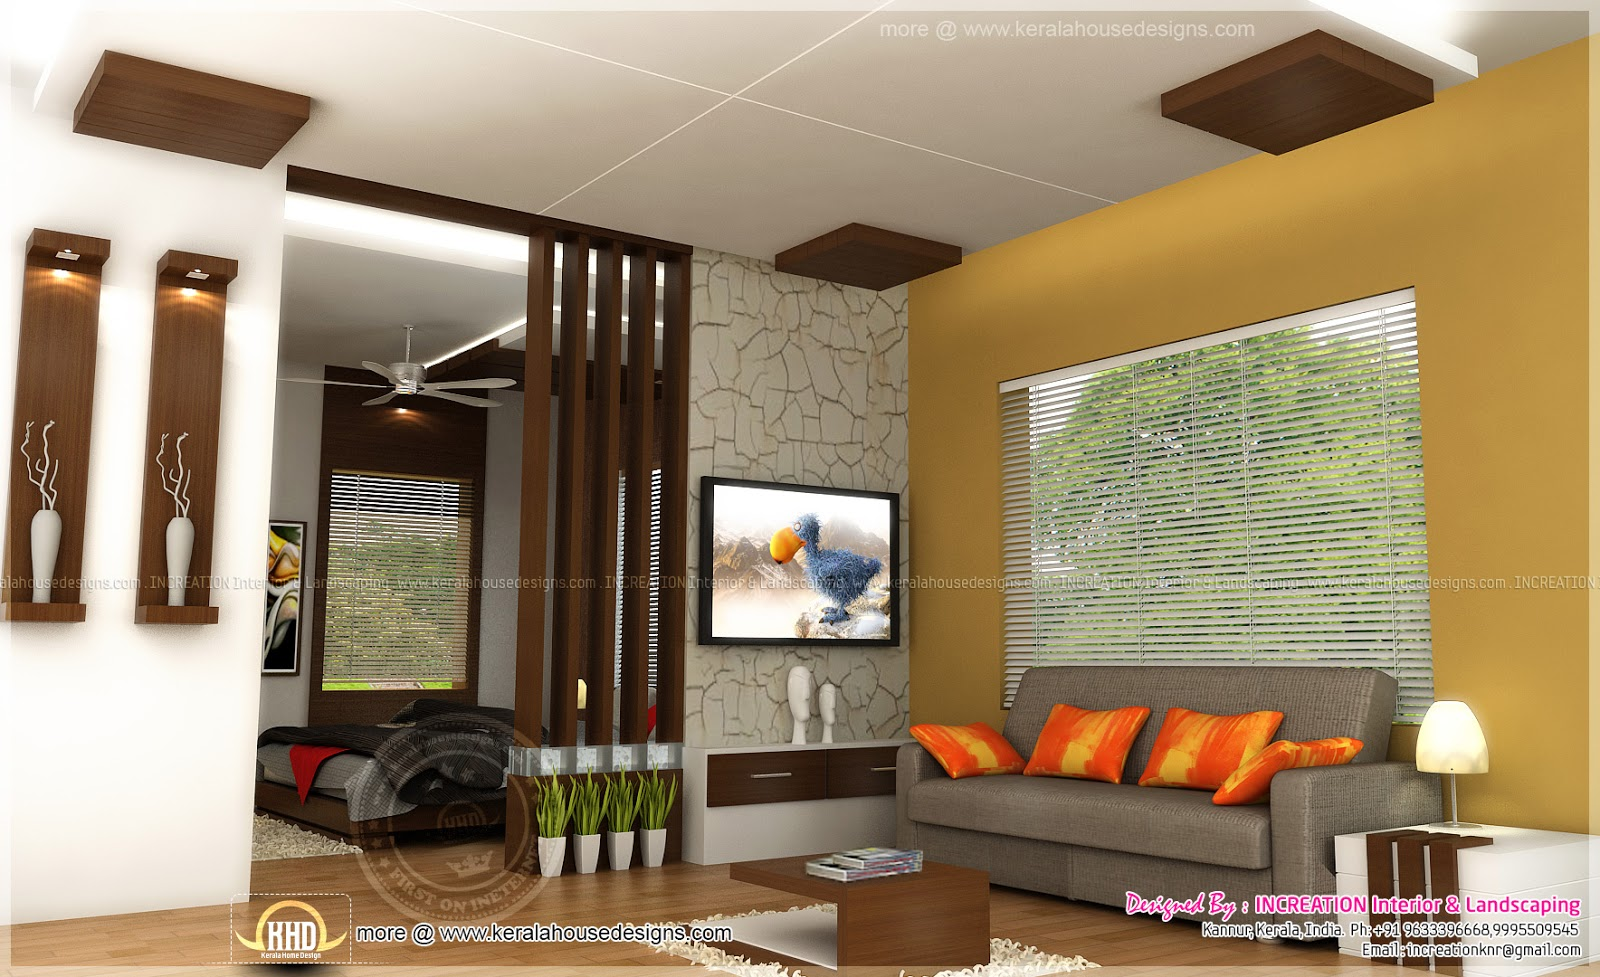 Interior designs from kannur kerala home kerala plans for Complete house interior design